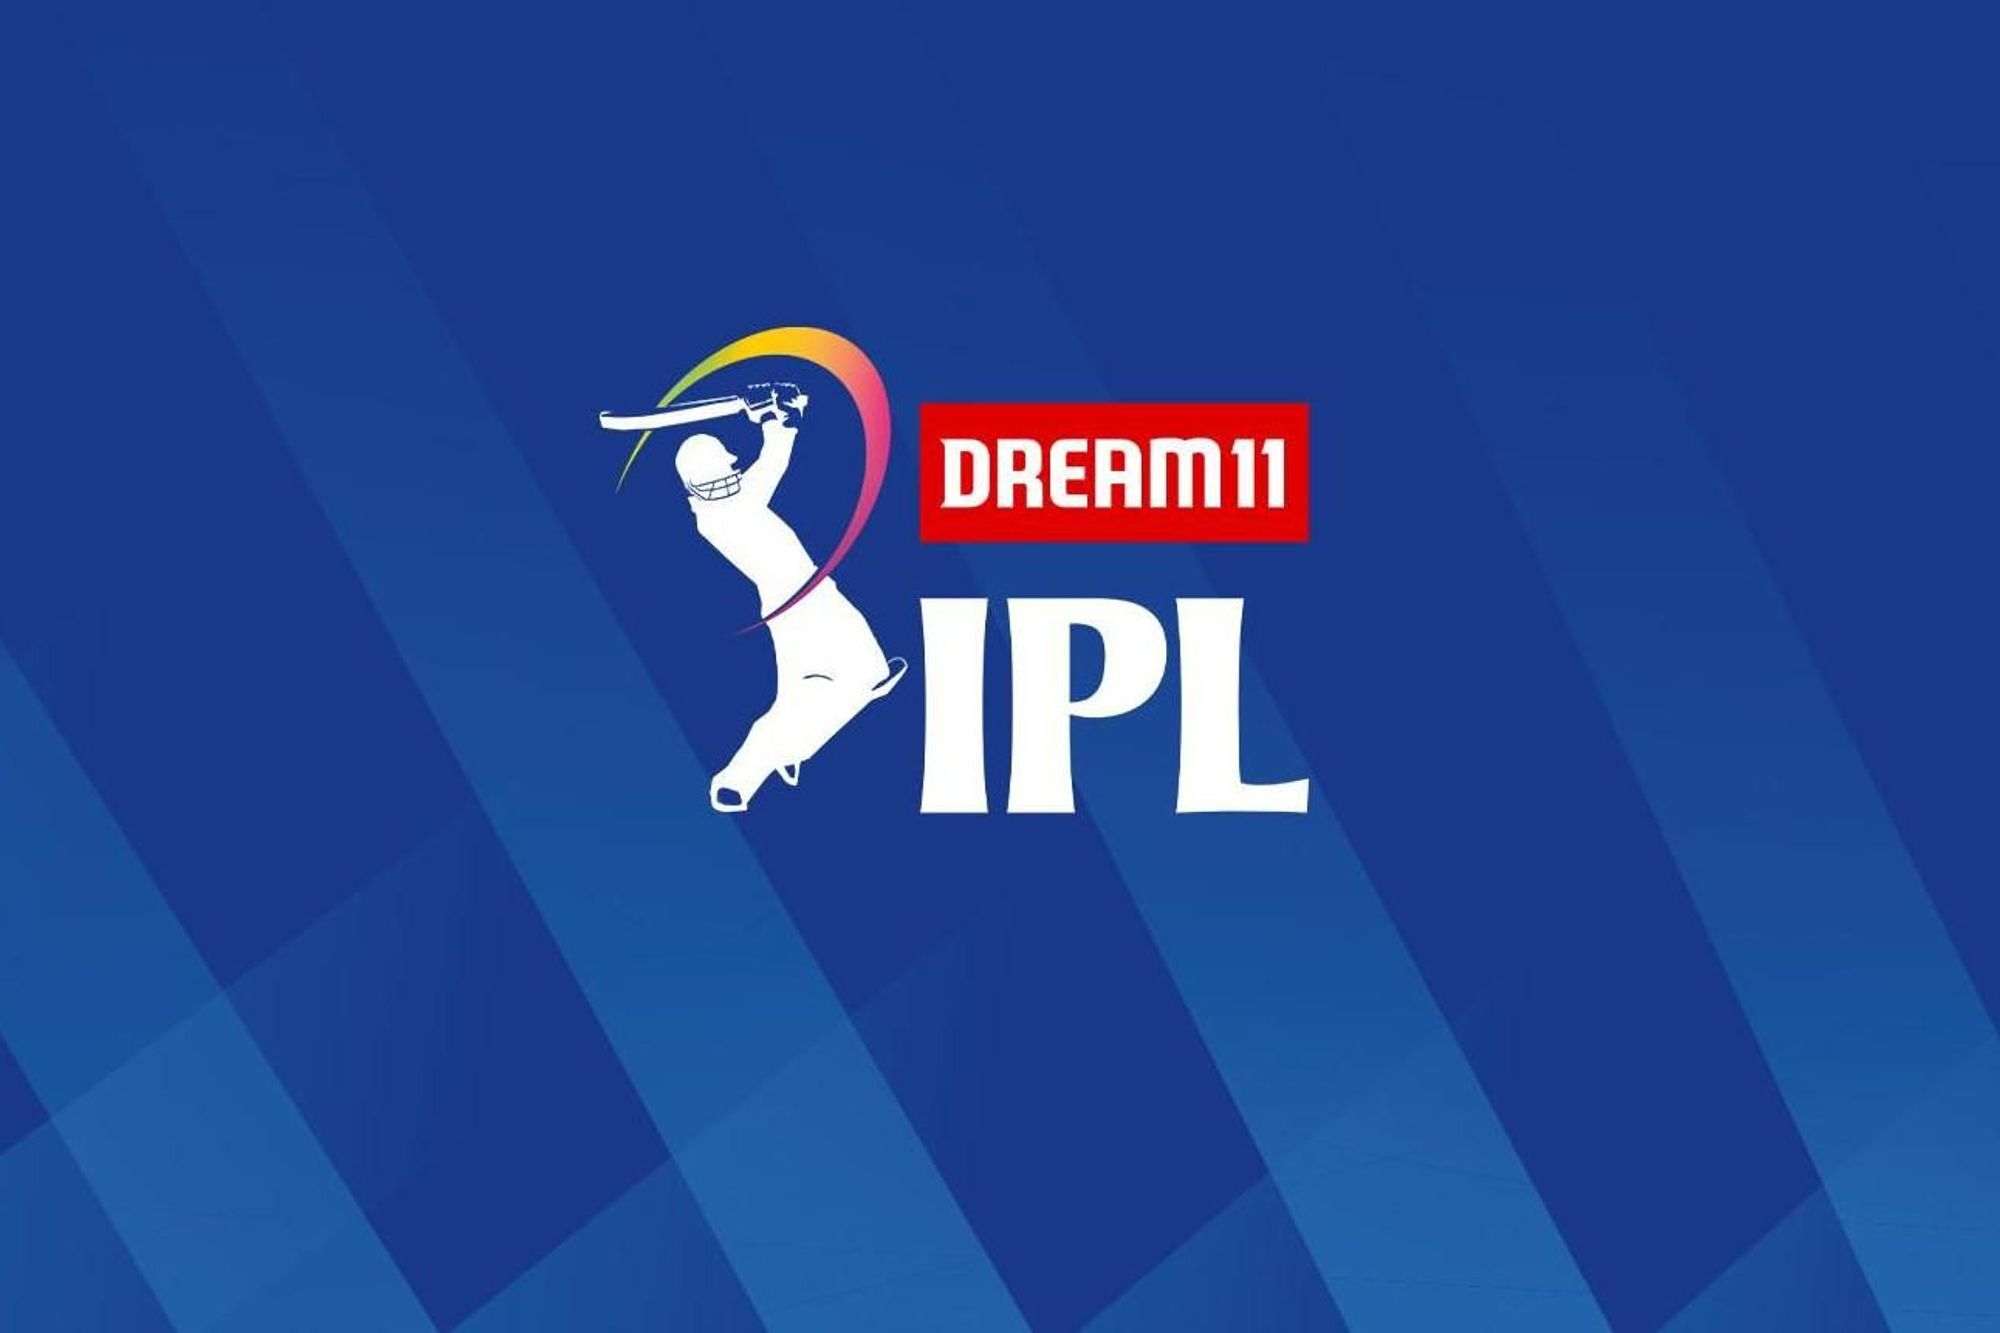 BCCI ANNOUNCES SCHEDULE FOR DREAM11 IPL 2020